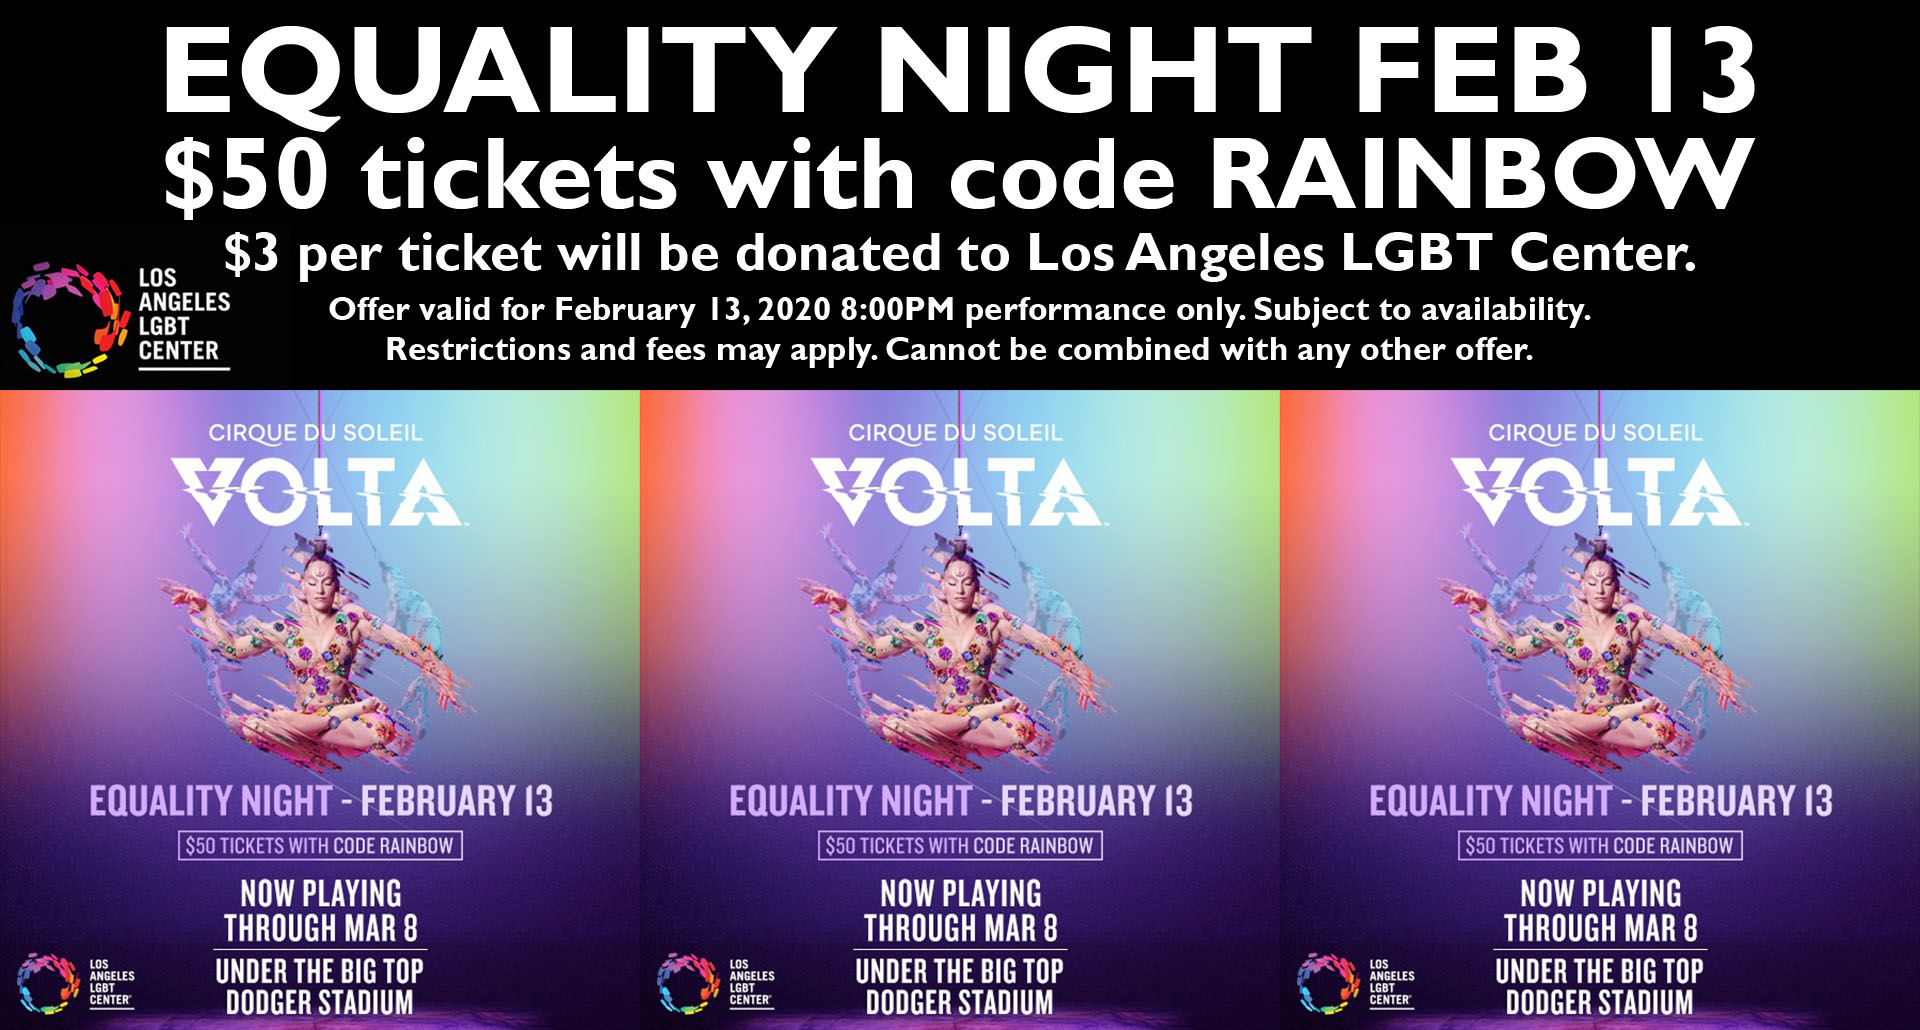 VOLTA Equality Night on Thursday, Feb. 13, at Dodger Stadium! Get discounted $50 tix or $175 VIP tix with promo code RAINBOW - $3 from each ticket donated to the Center. See you under the Big Top!